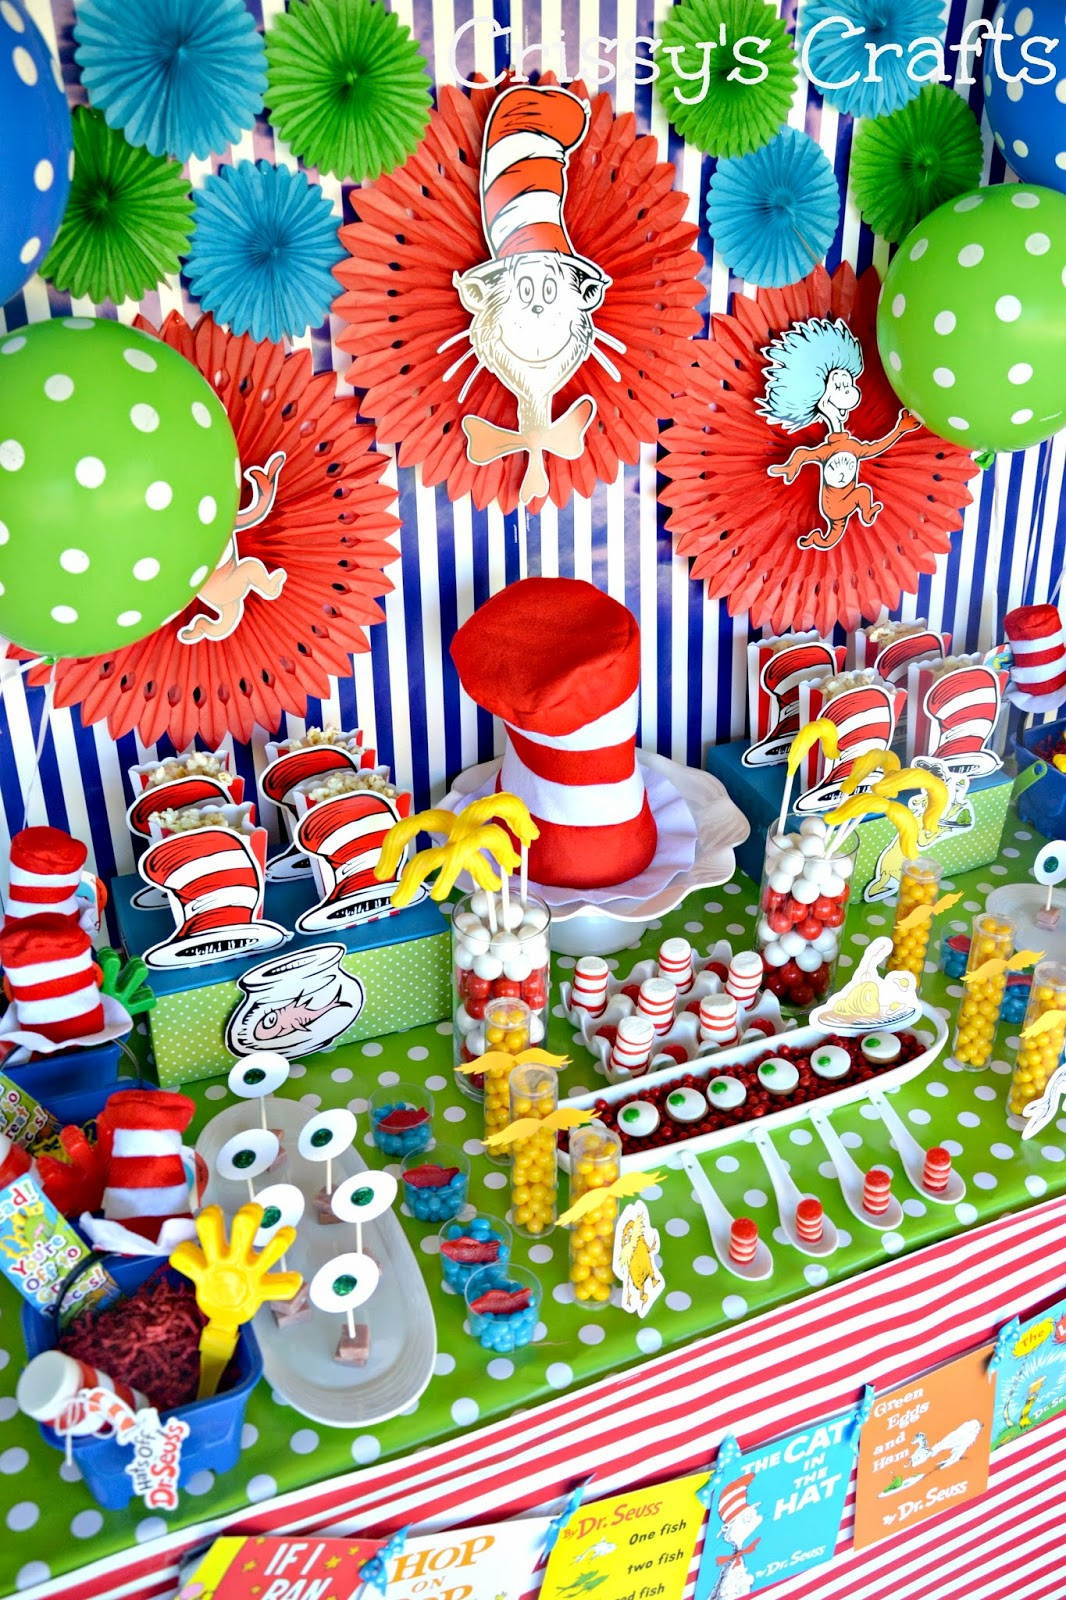 Best ideas about Dr.seuss Birthday Decorations . Save or Pin Crissy s Crafts Dr Seuss Party Ideas and Snacks Now.